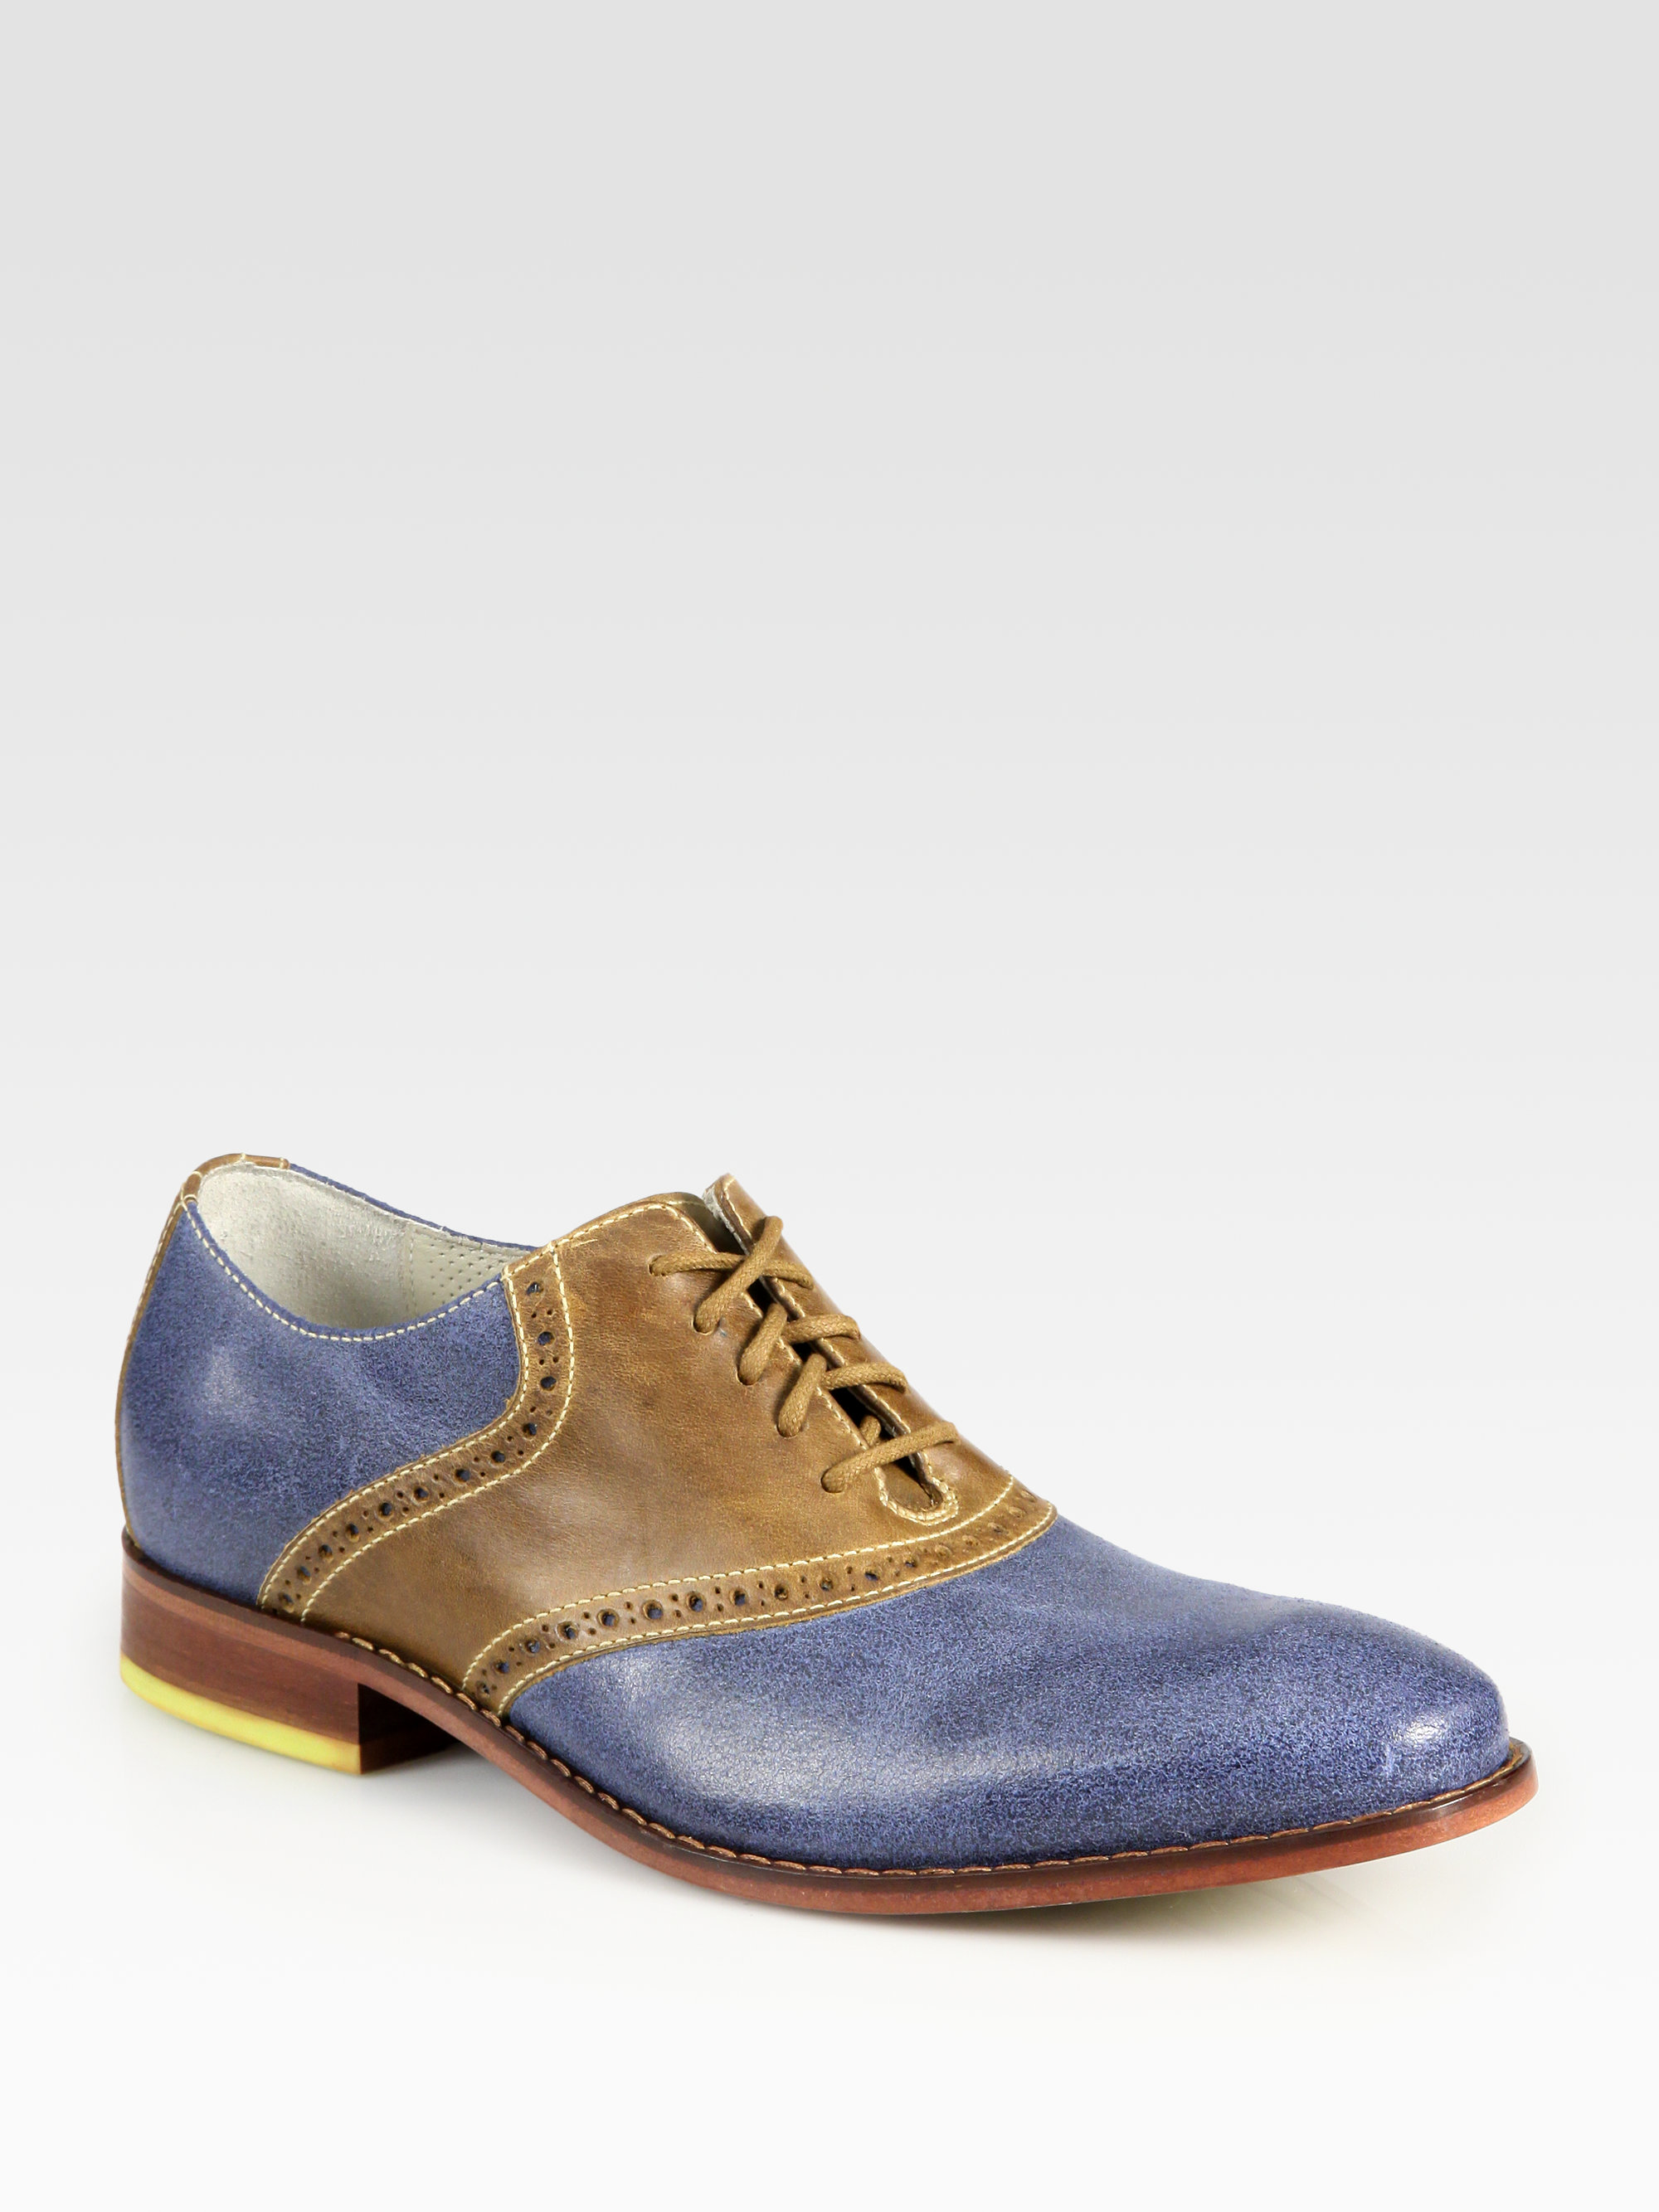 Lyst Cole Haan Air Colton Saddle Shoe In Blue For Men